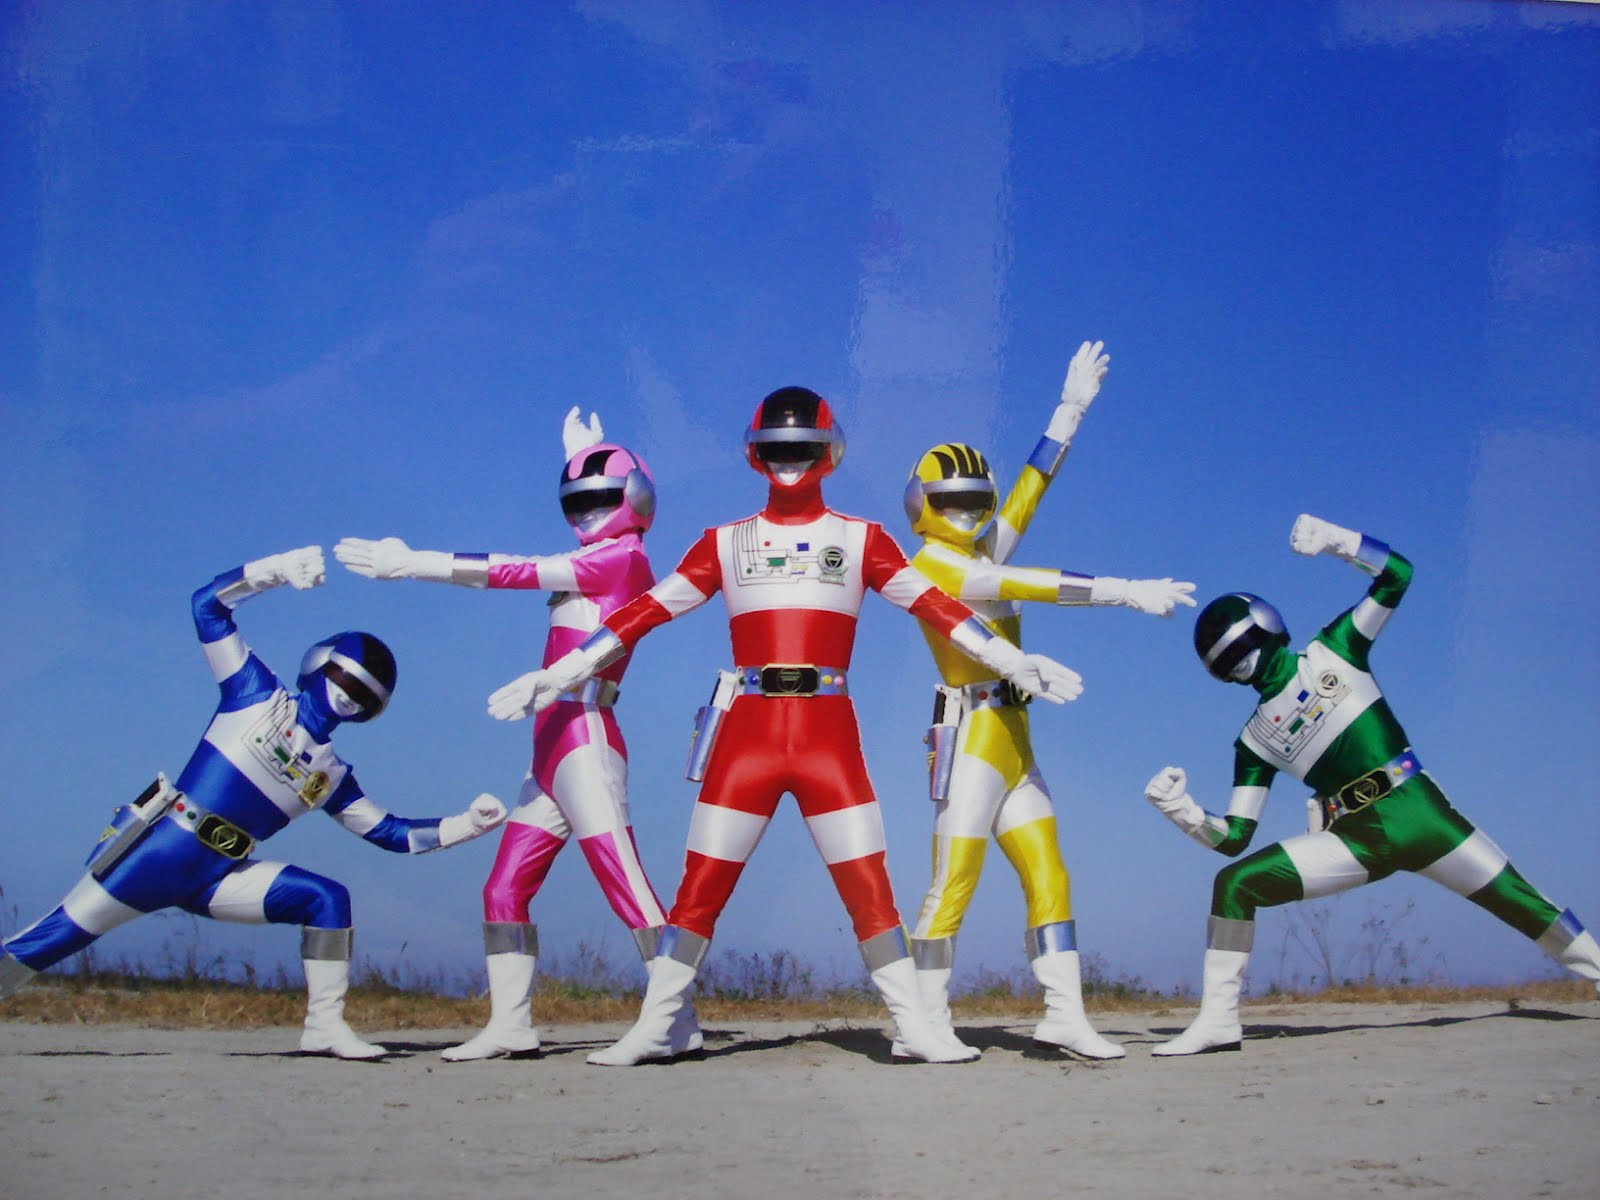 Choudenshi Bioman English Dubbed Super Sentai Show Run in the Philippines Retro Pilipinas Feature